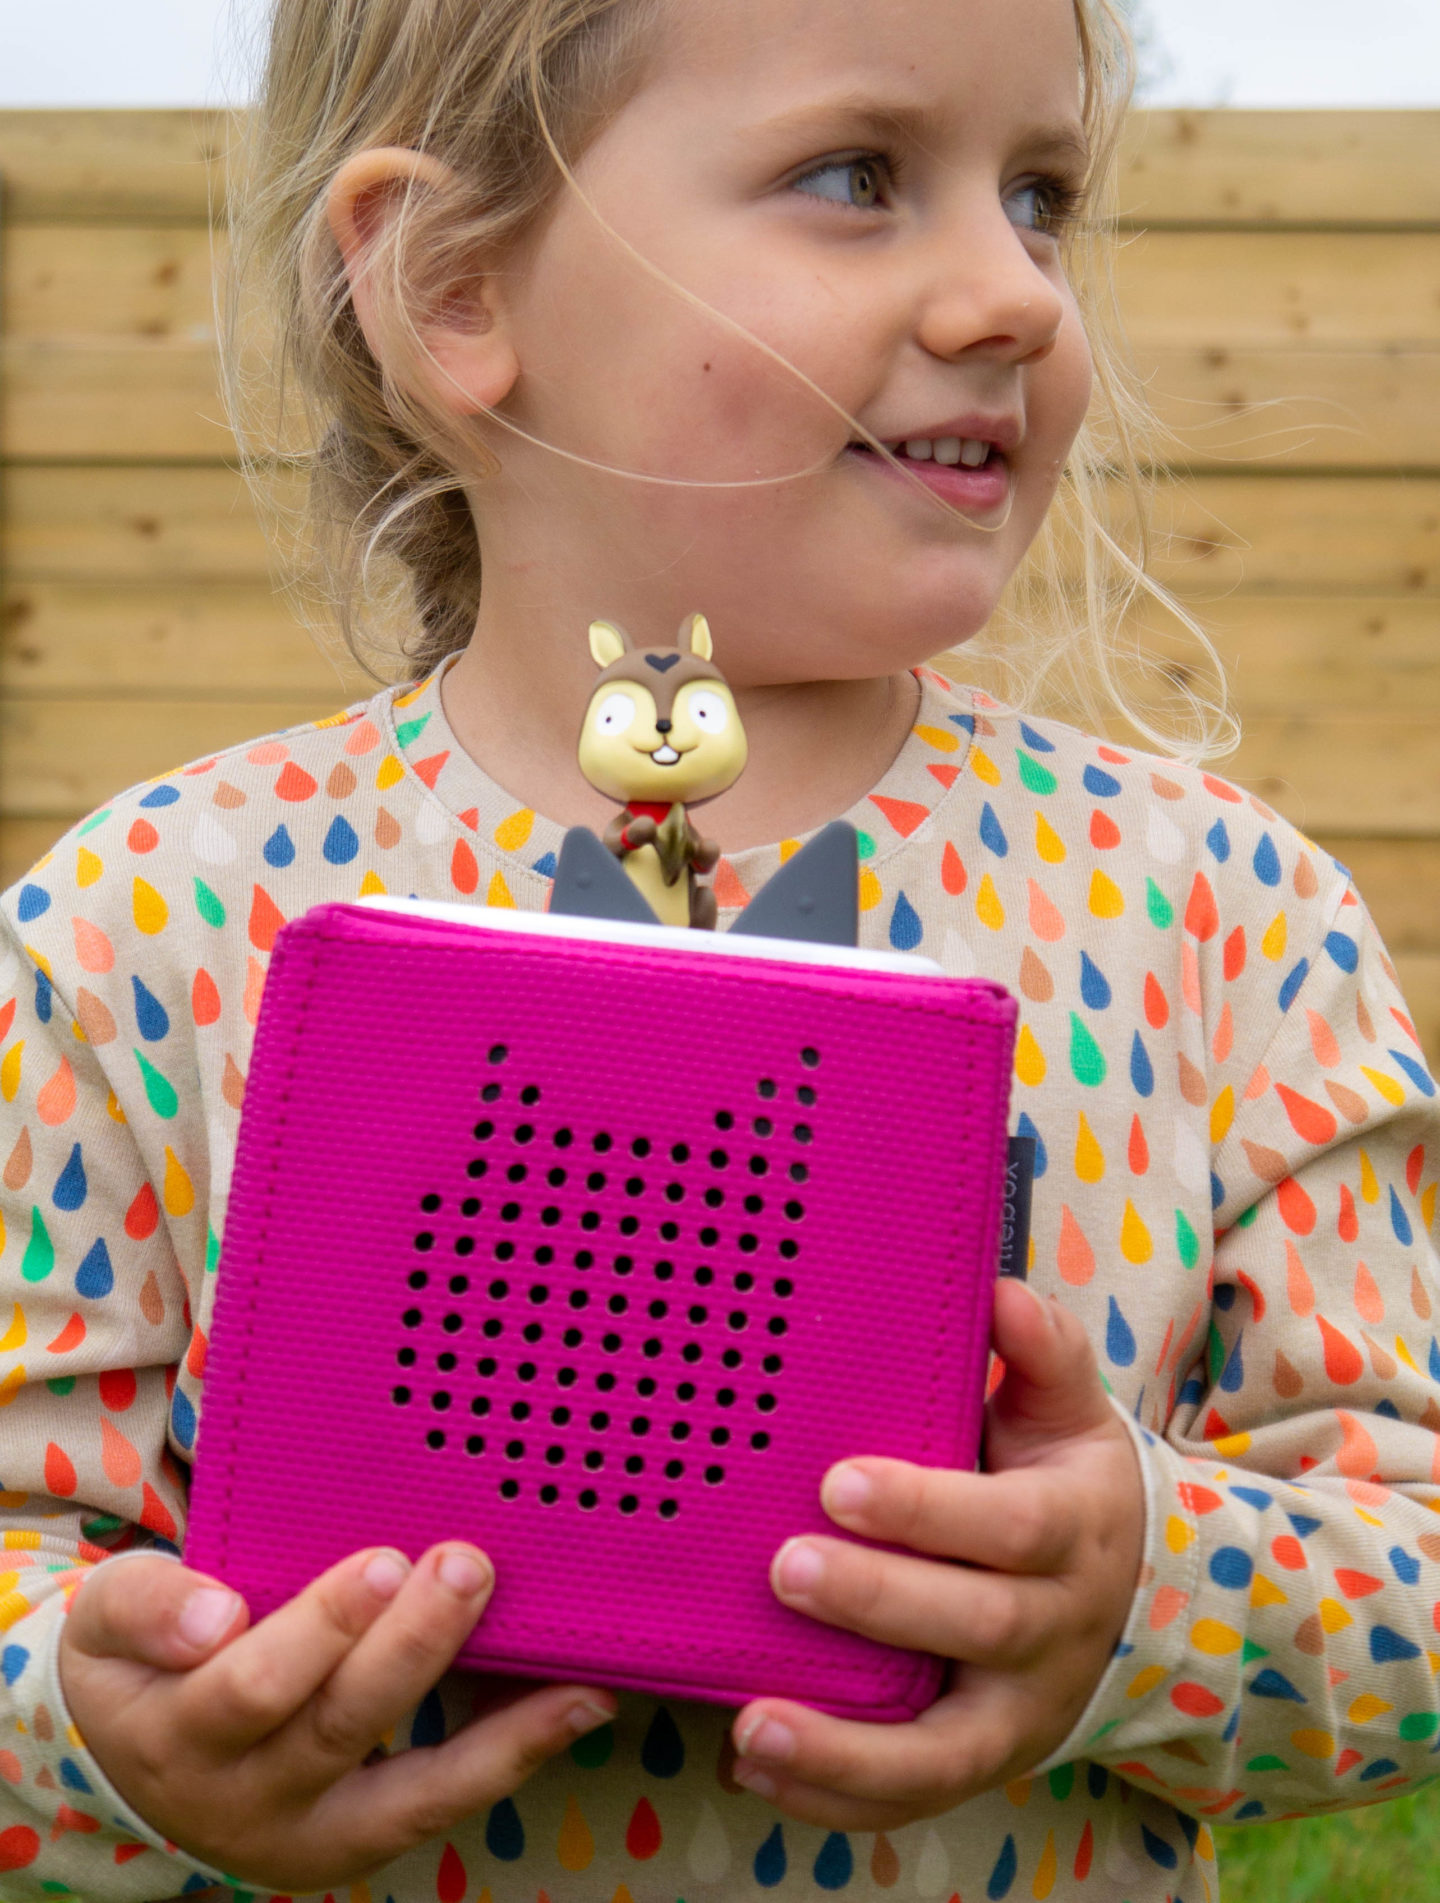 The Toniebox is a great gadget for children.